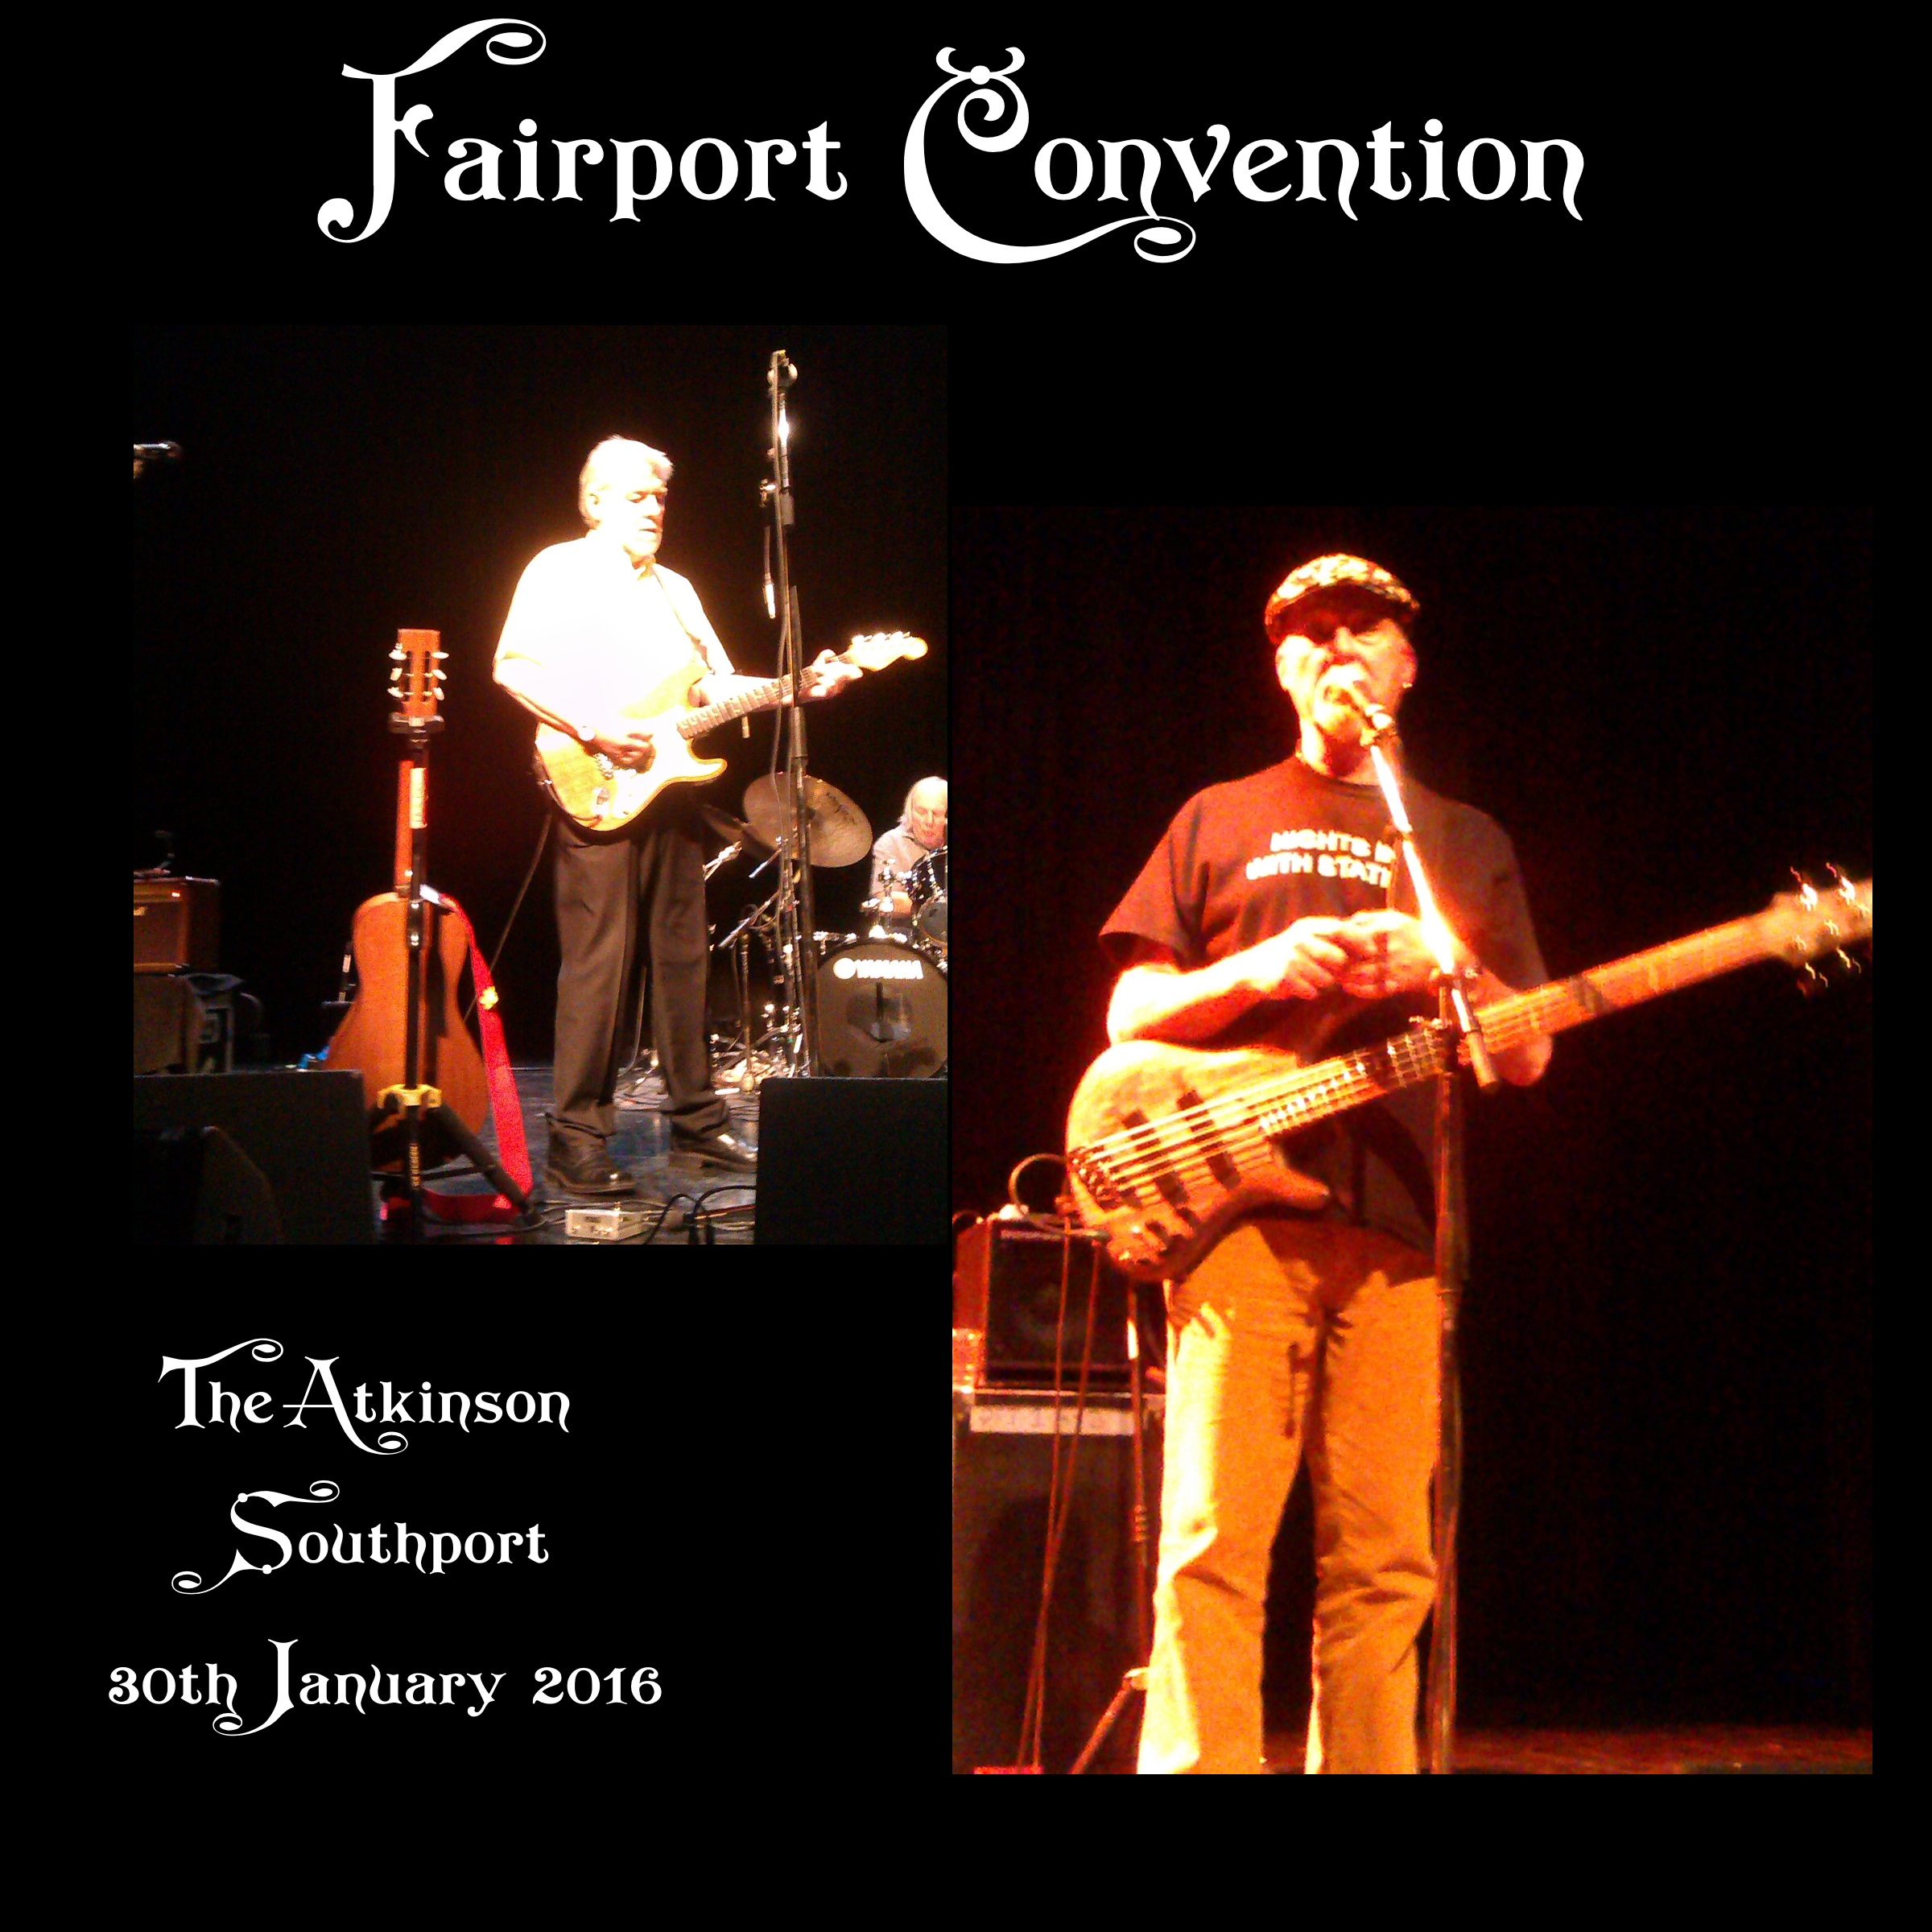 FairportConvention2016-01-30TheAtkinsonSouthportUK (2).jpg